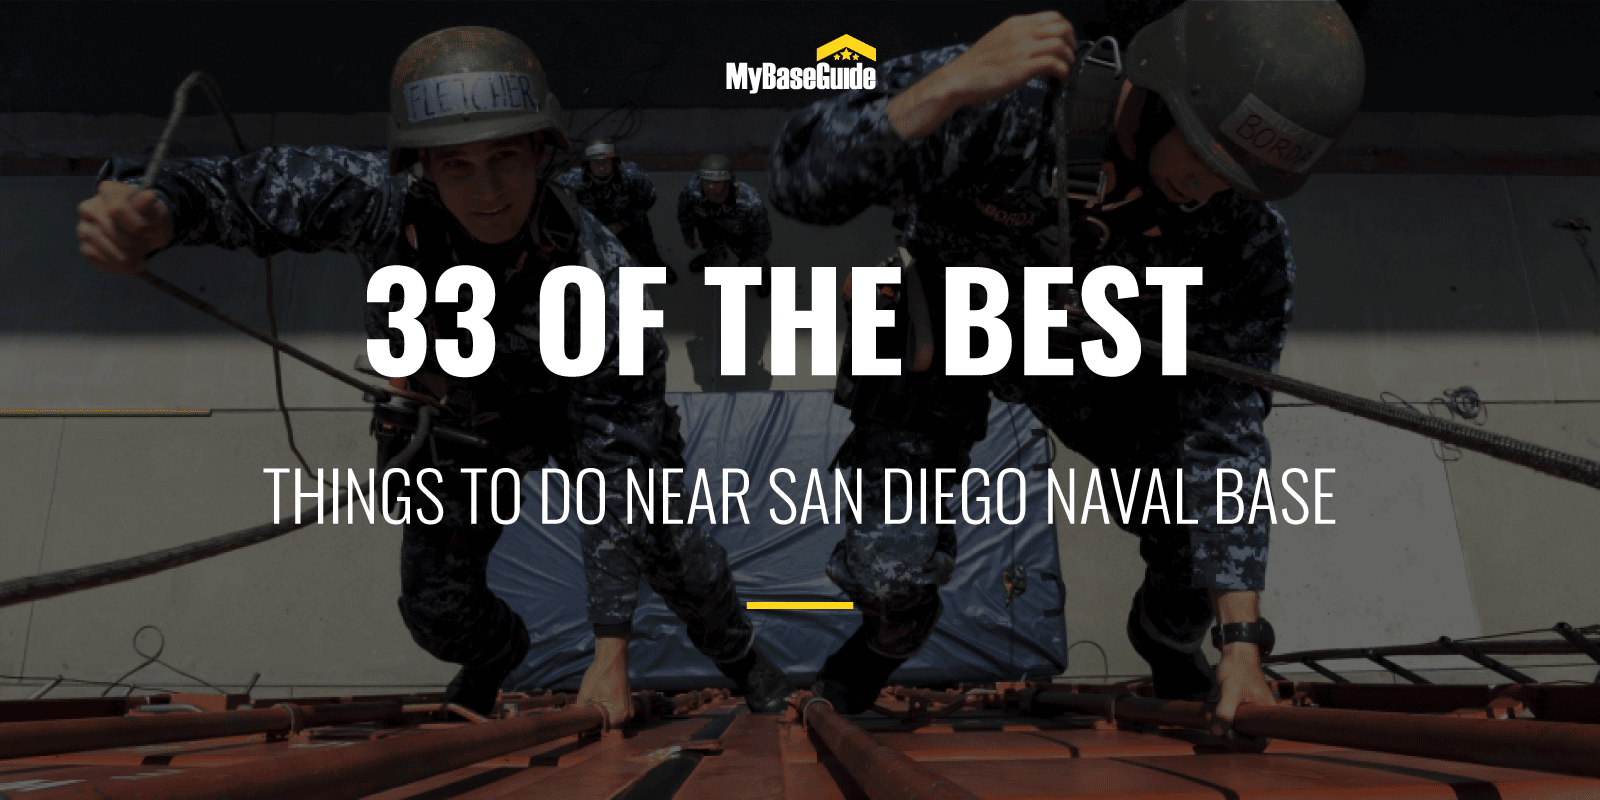 33 Of the Best Things to Do Near San Diego Naval Base